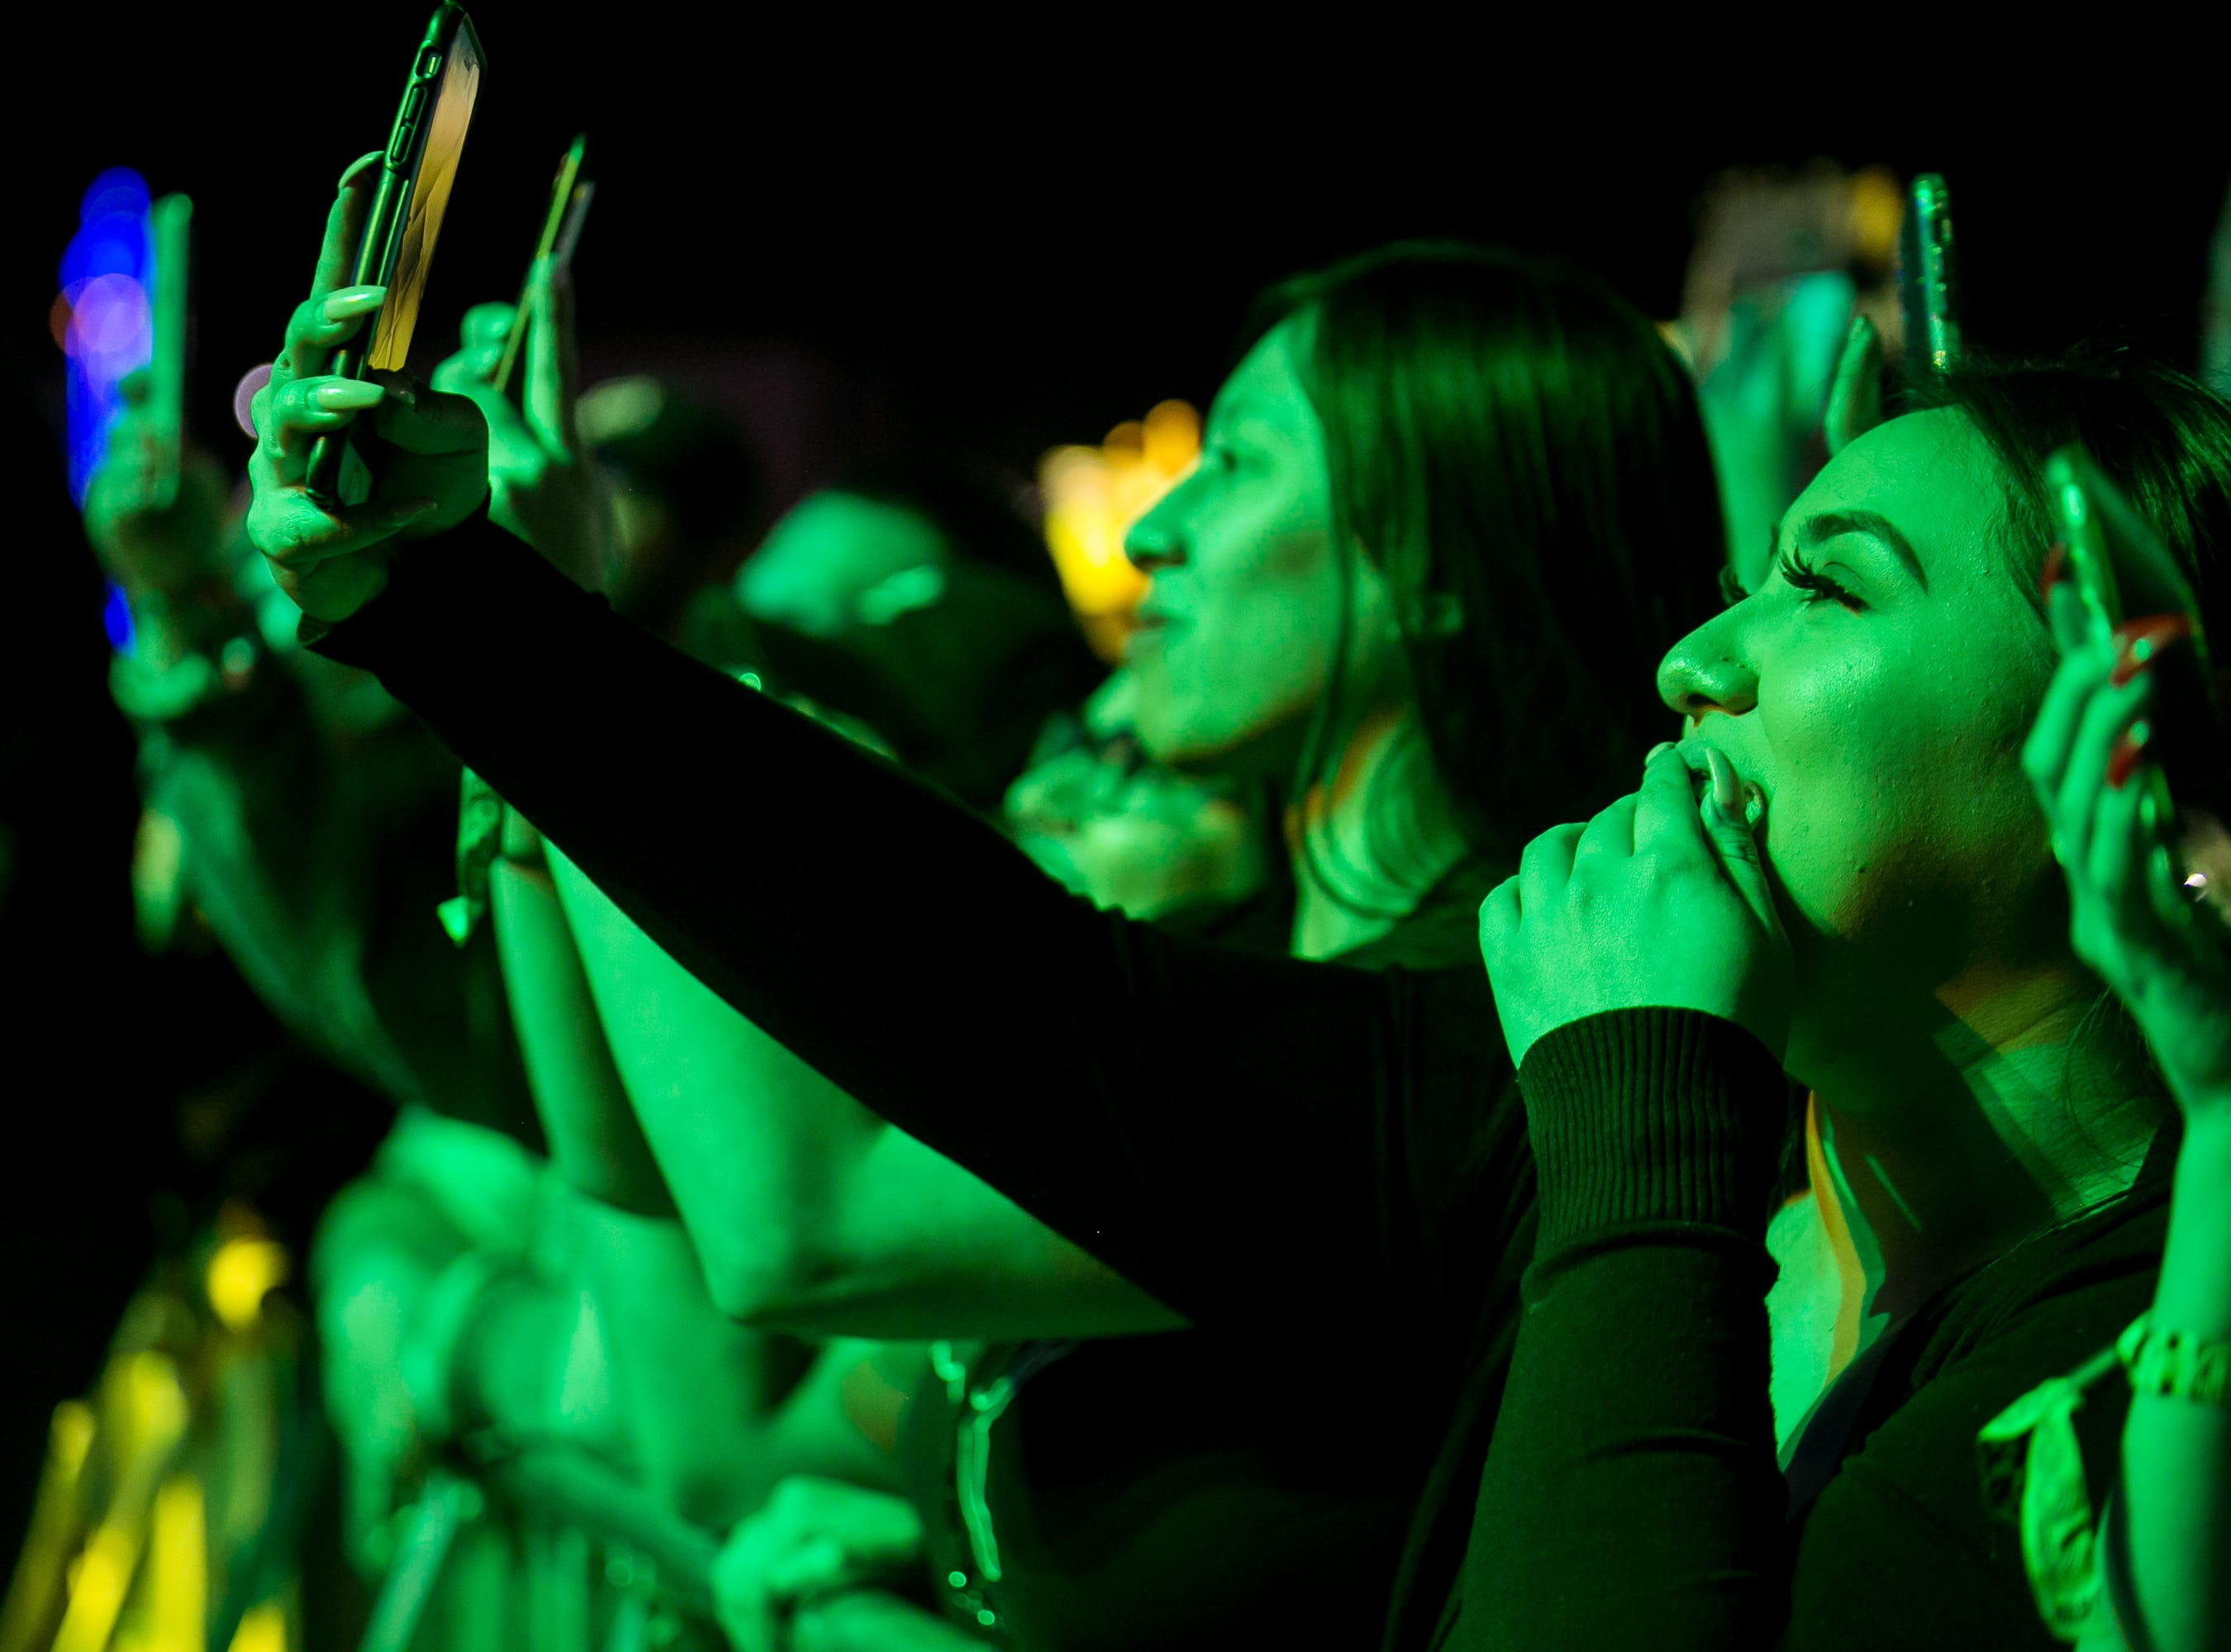 Fans watch OZUNA perform at Pot of Gold Music Festival at Steele Indian School Park on Friday, March 15, 2019.